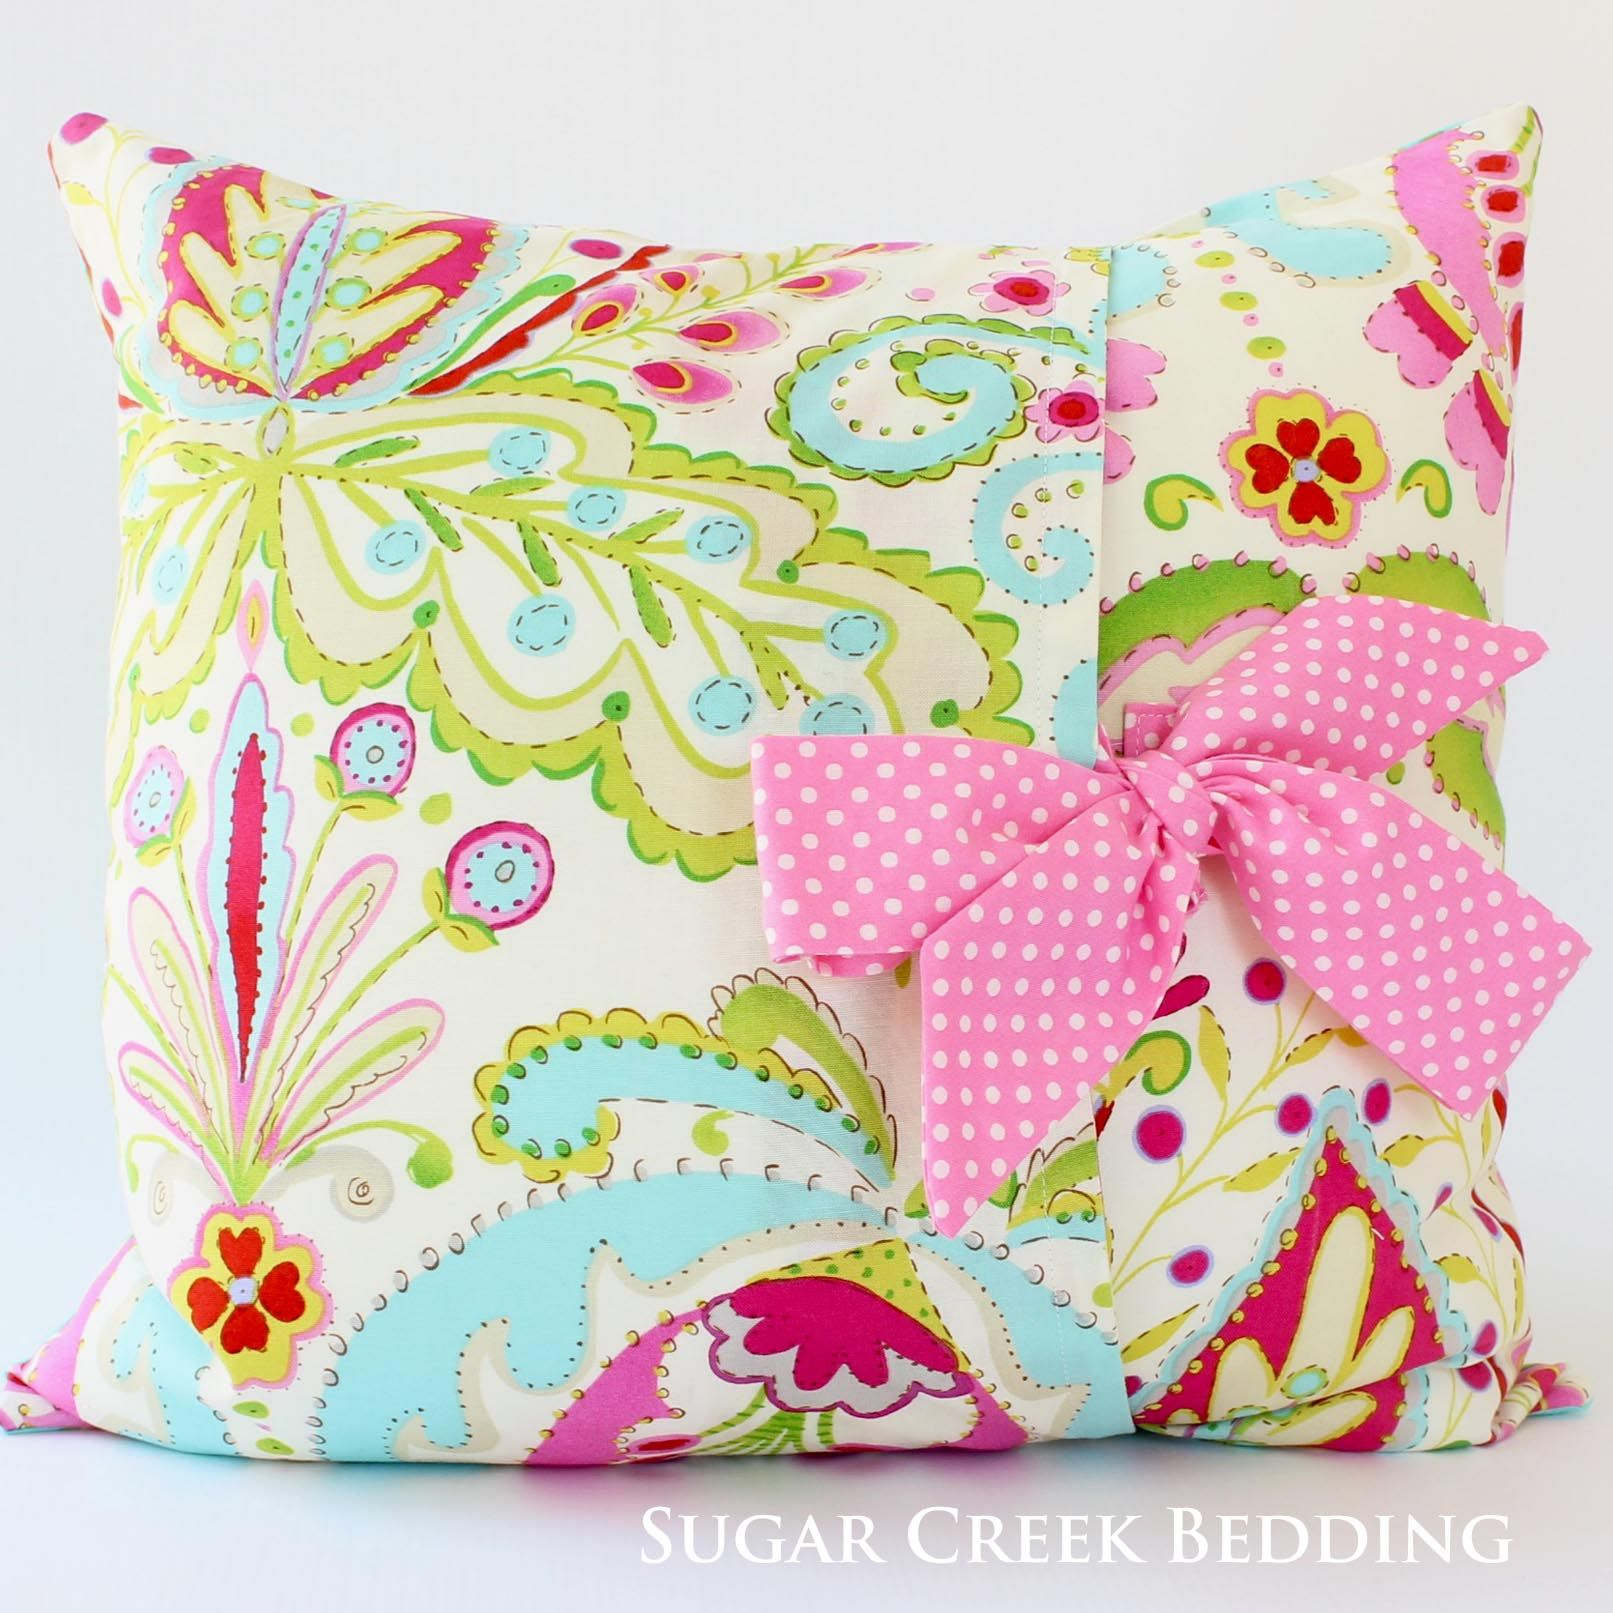 pillowcase celebrate with ruffles simple ruffled to handmade pillow edges and pinned shabby design pillows chic hgtv make